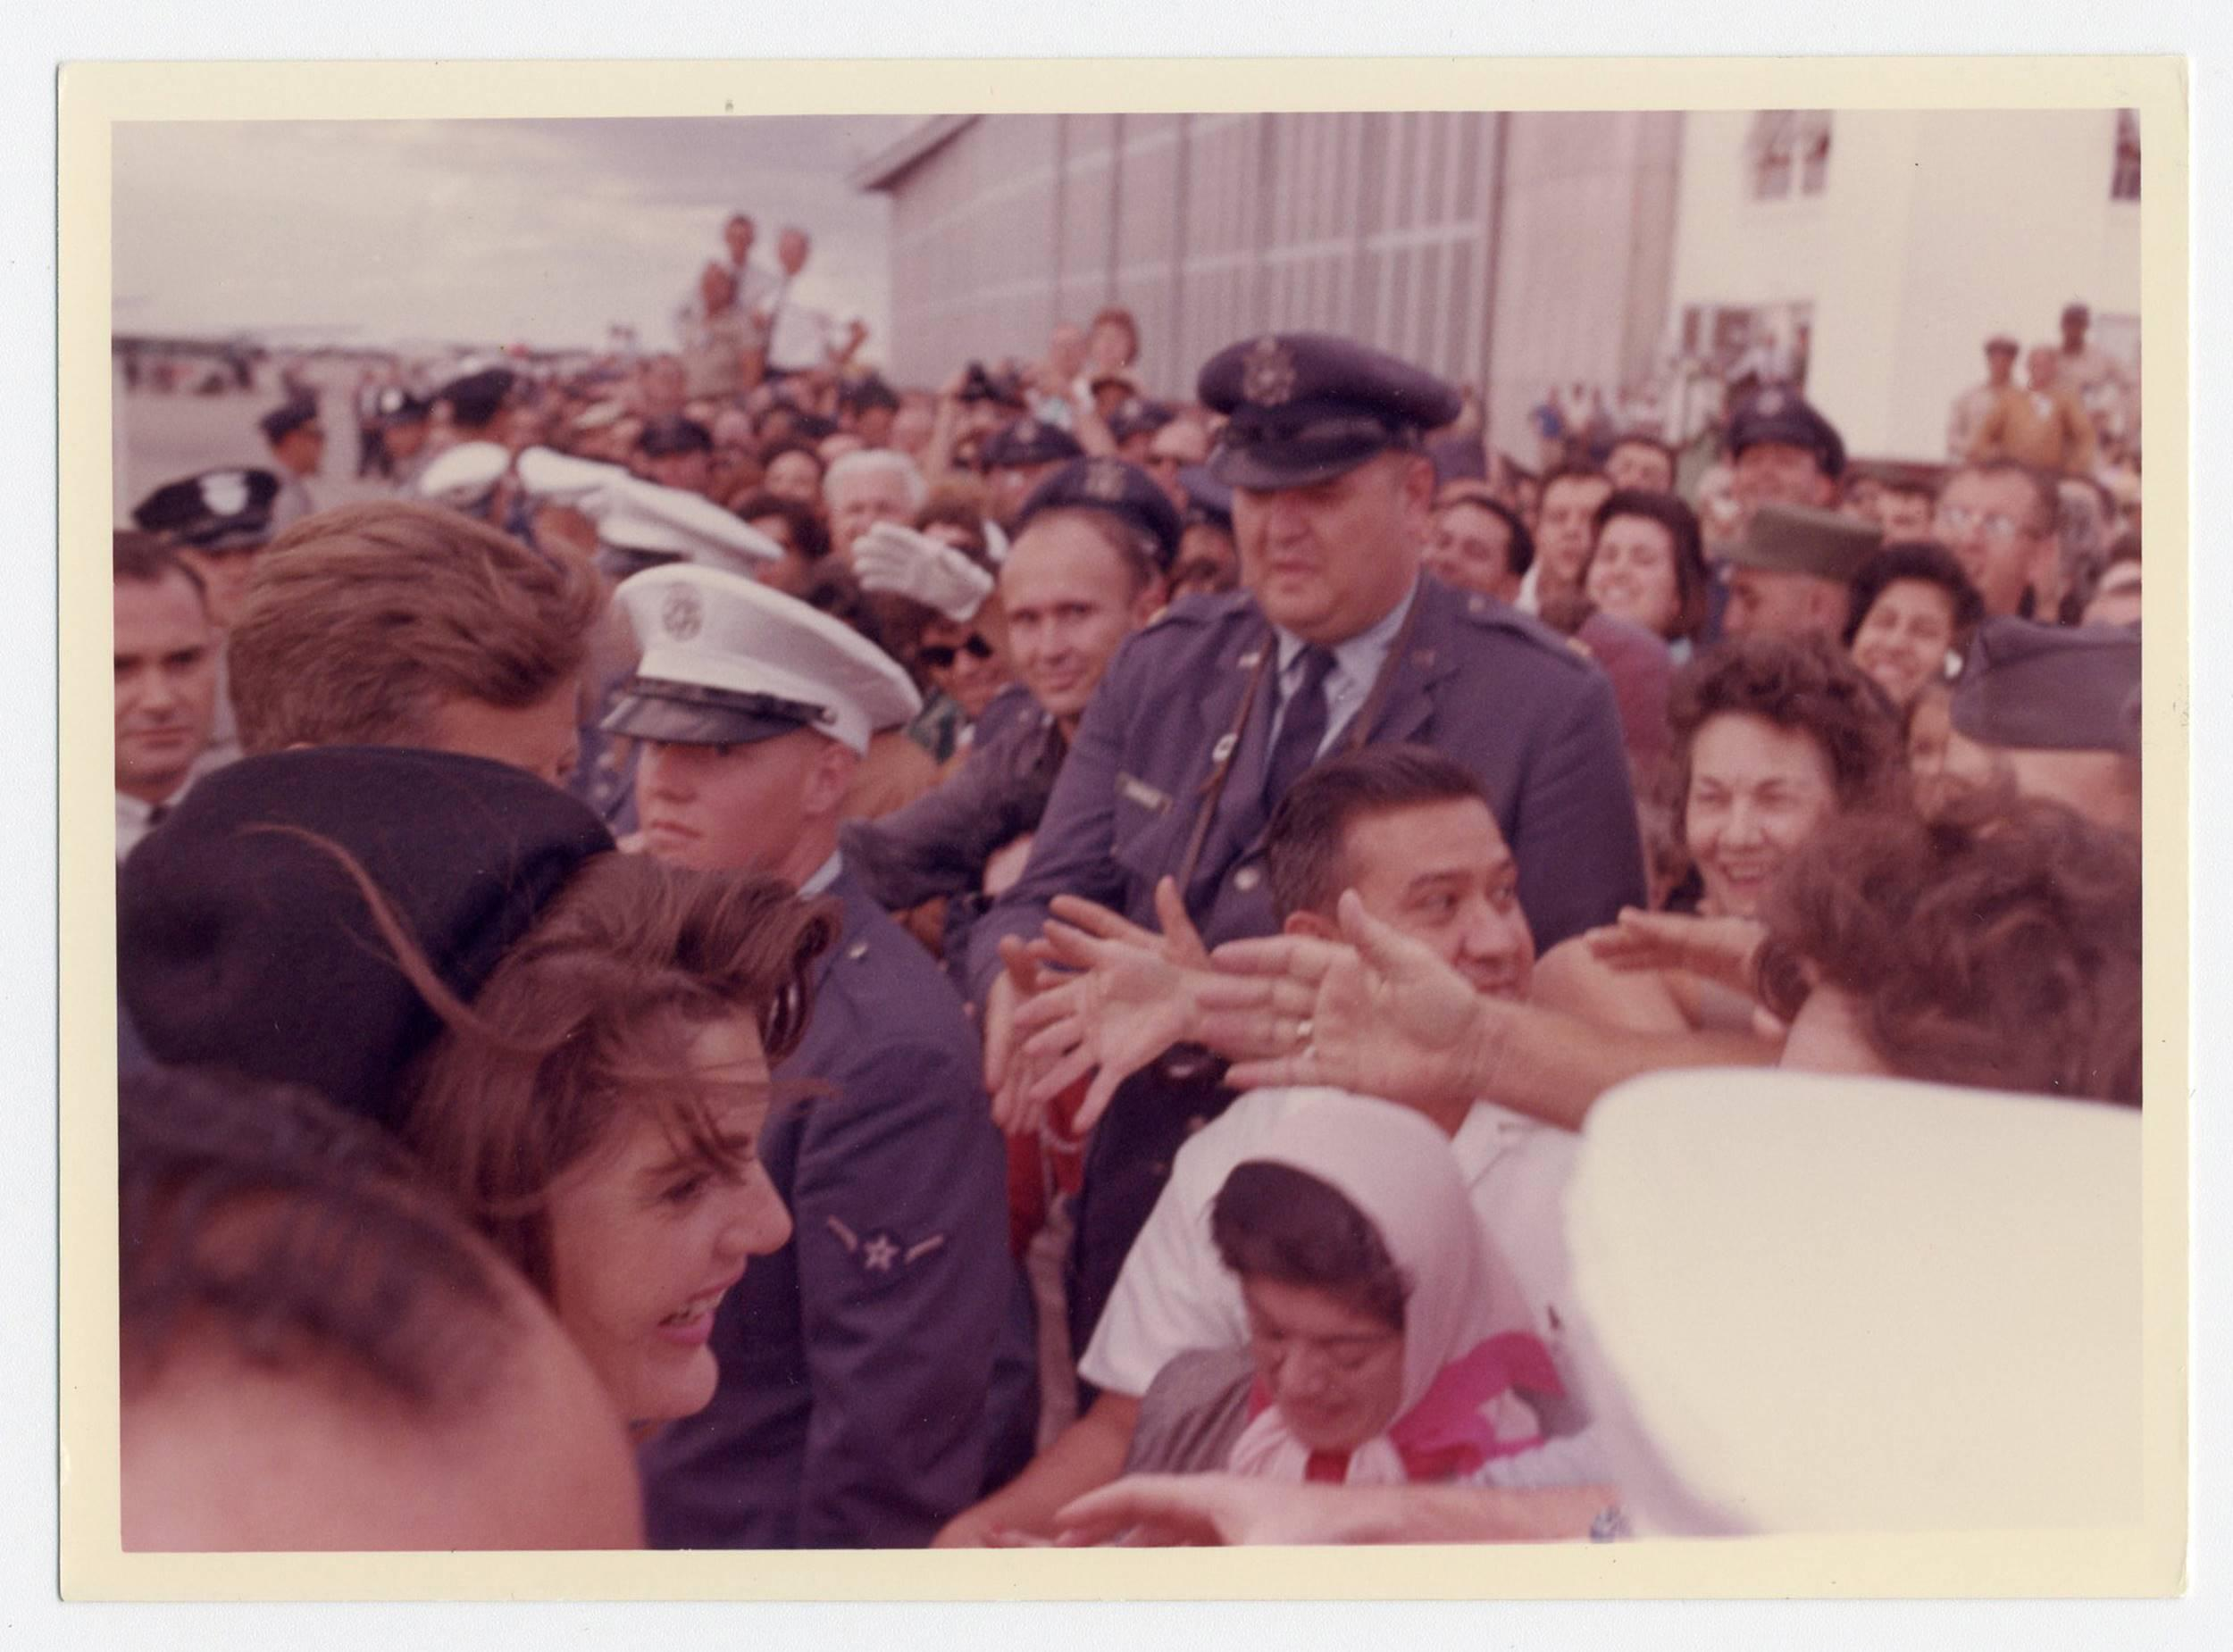 John F. Kennedy & Jackie Kennedy at Houston International Airport the Day Before the Assassination, Vintage Photo from Cecil Stoughton's Personal Collection